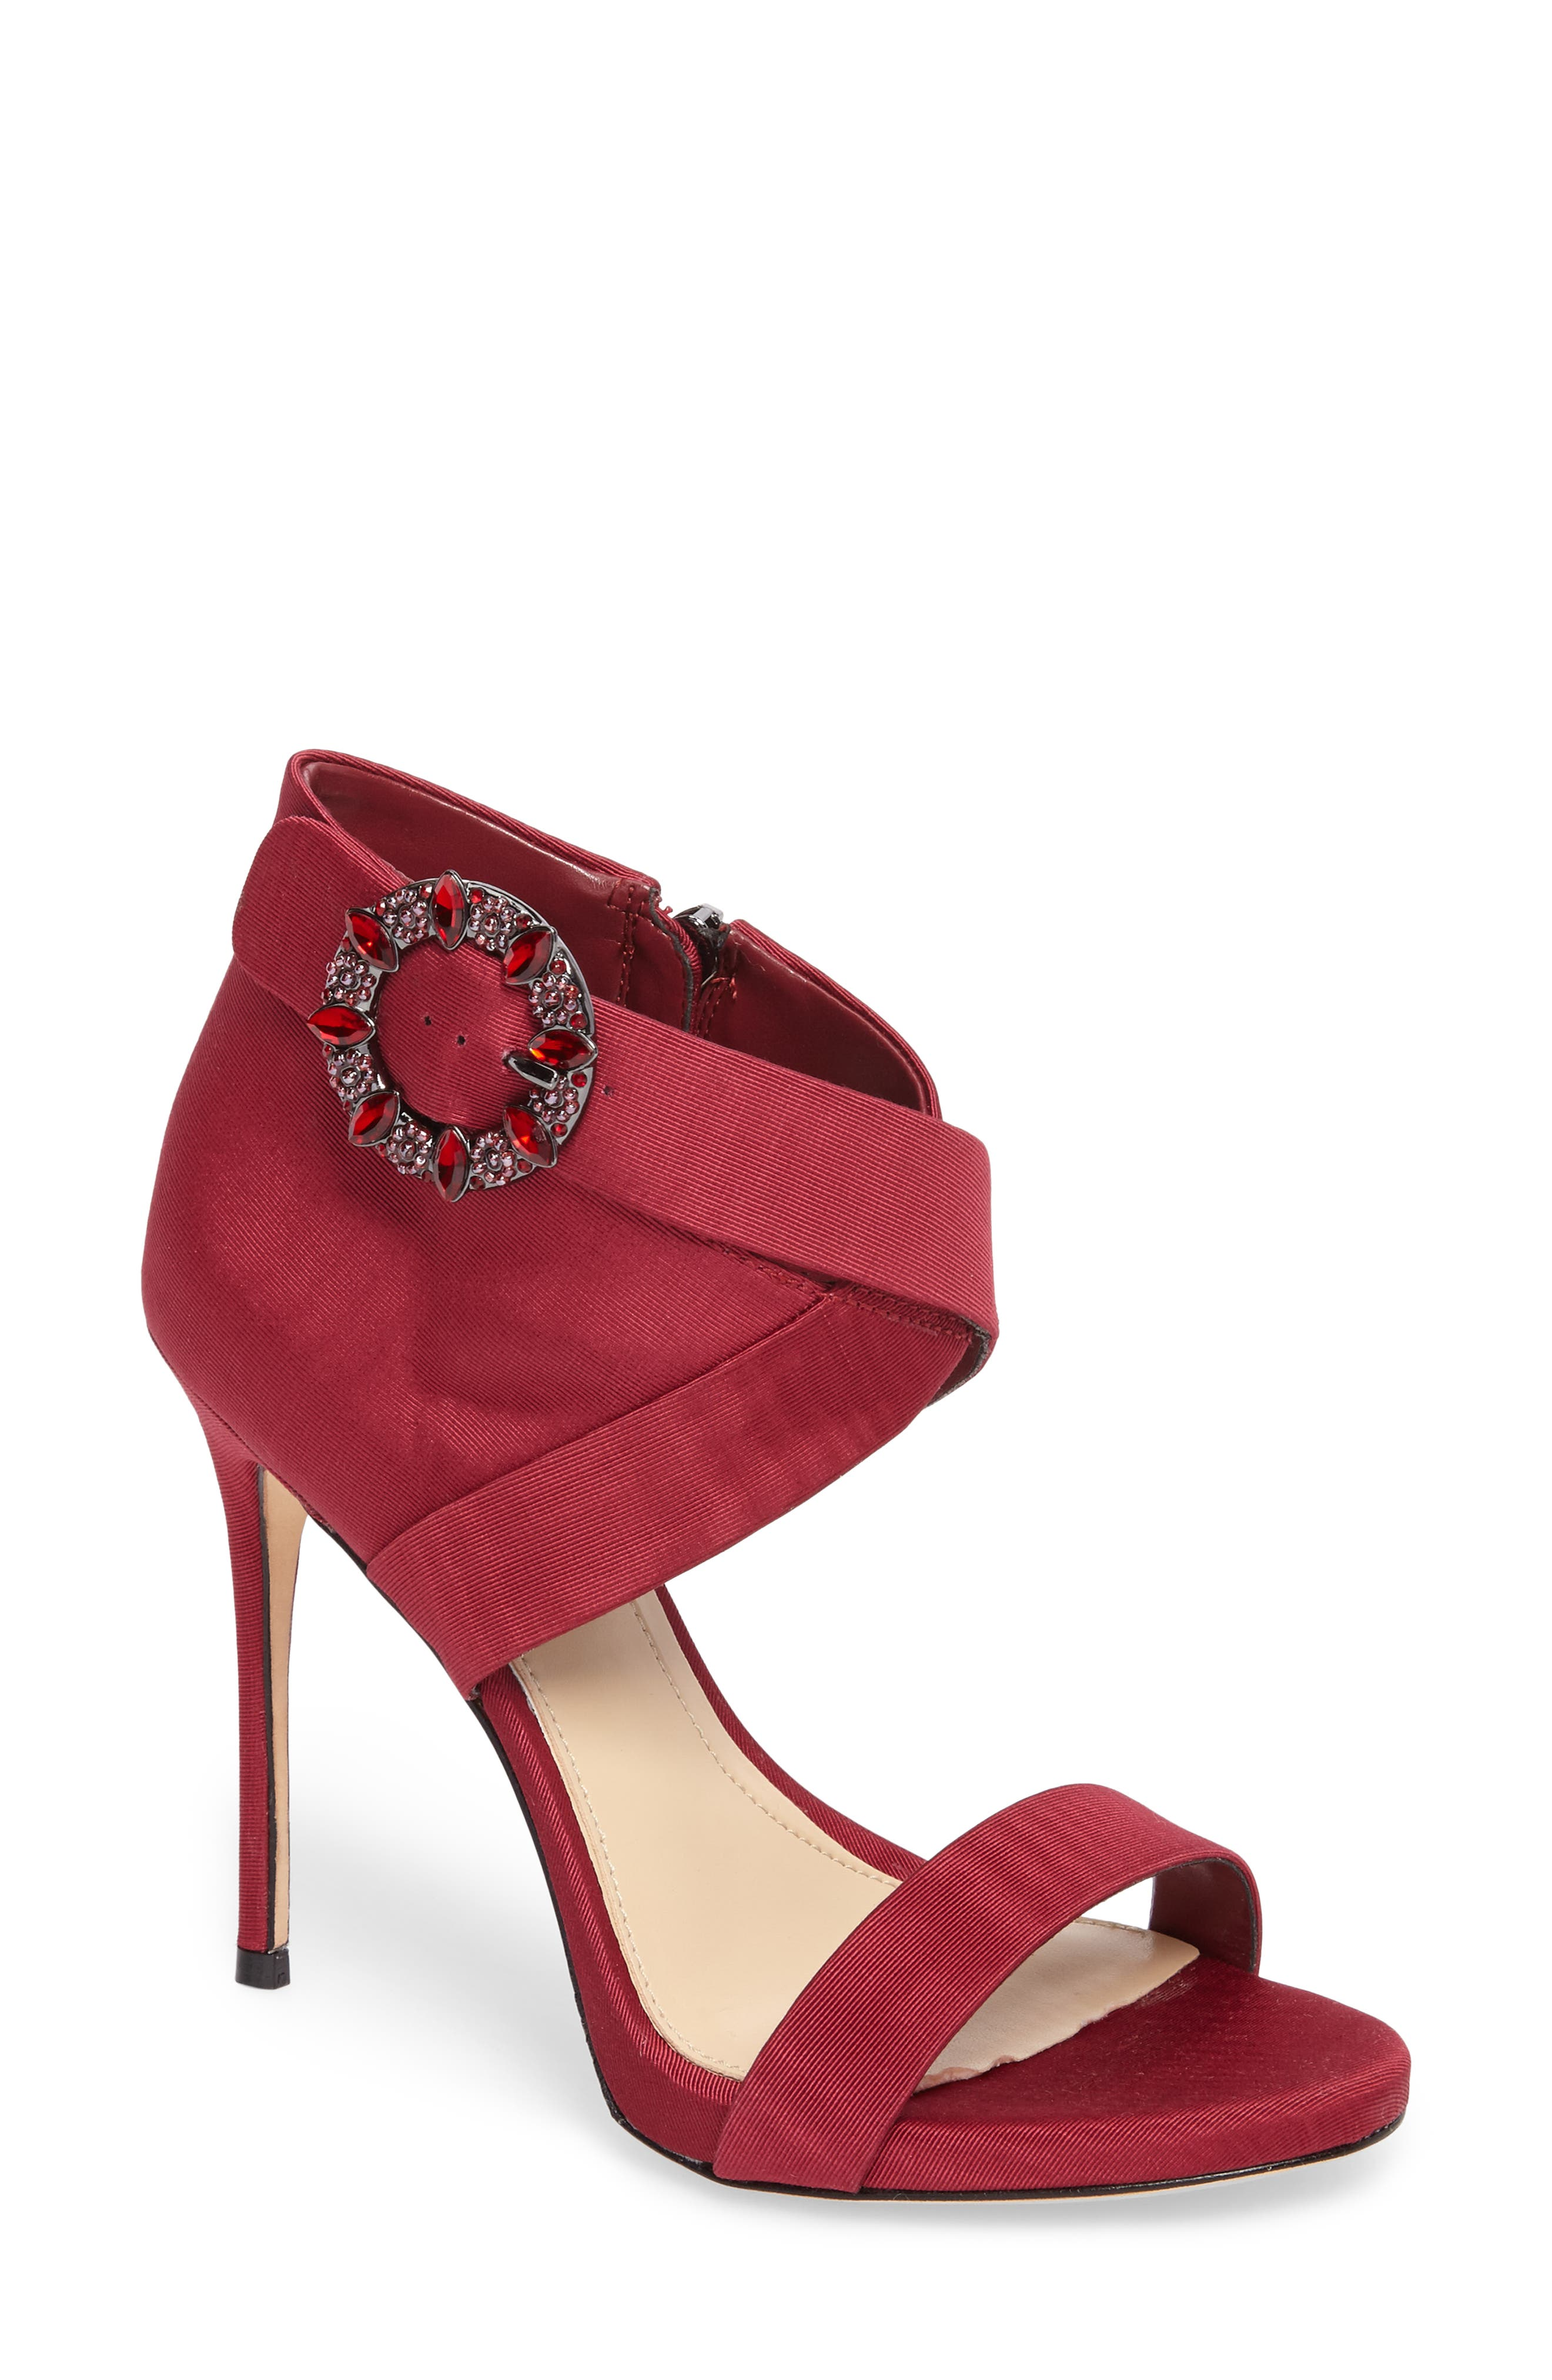 Alternate Image 1 Selected - Vince Camuto Dashal Crystal Buckle Sandal (Women)